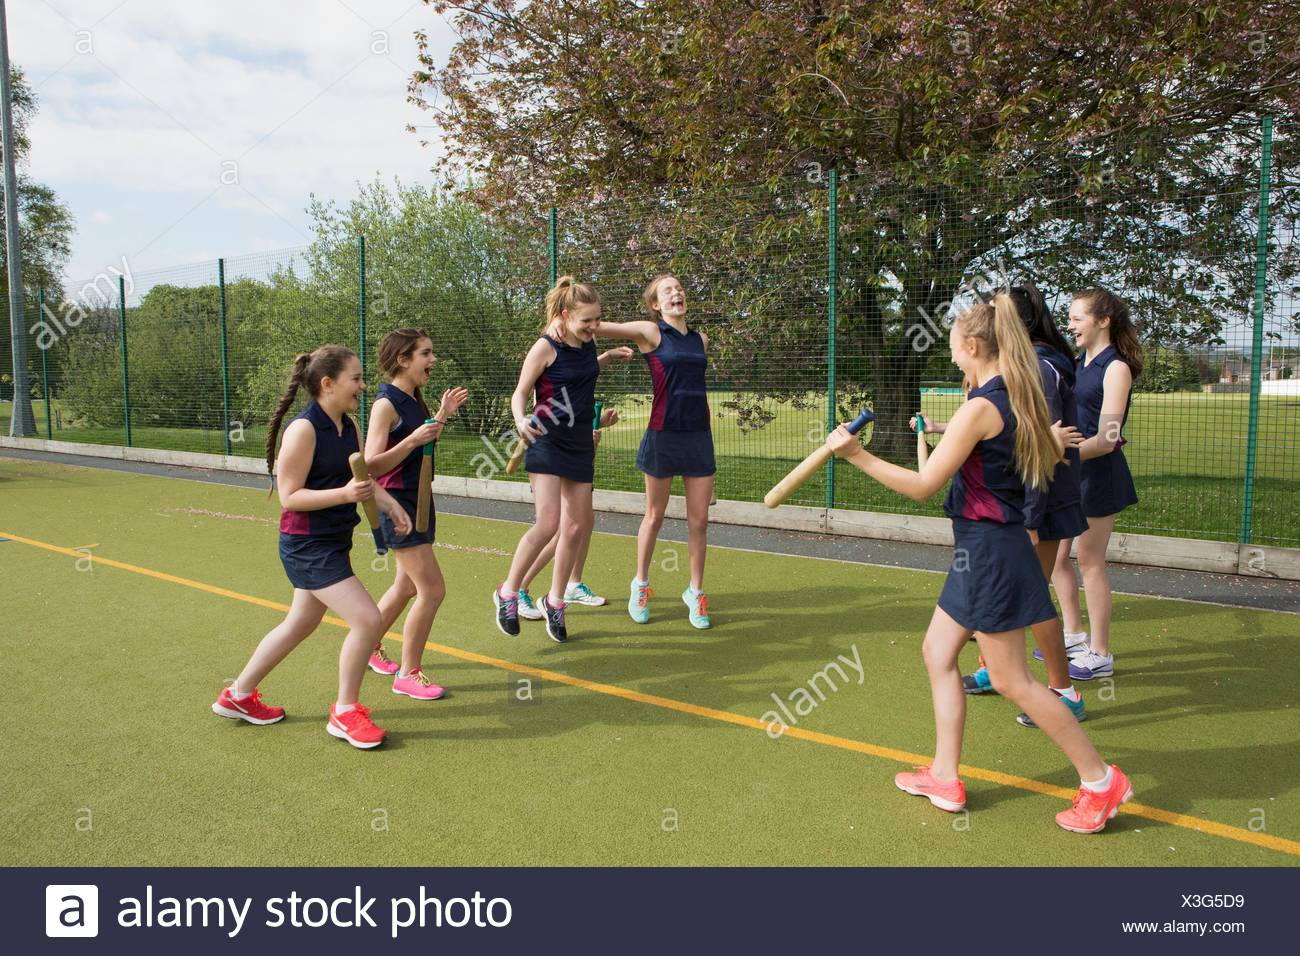 Group of girls on sports field with rounders bats - Stock Image